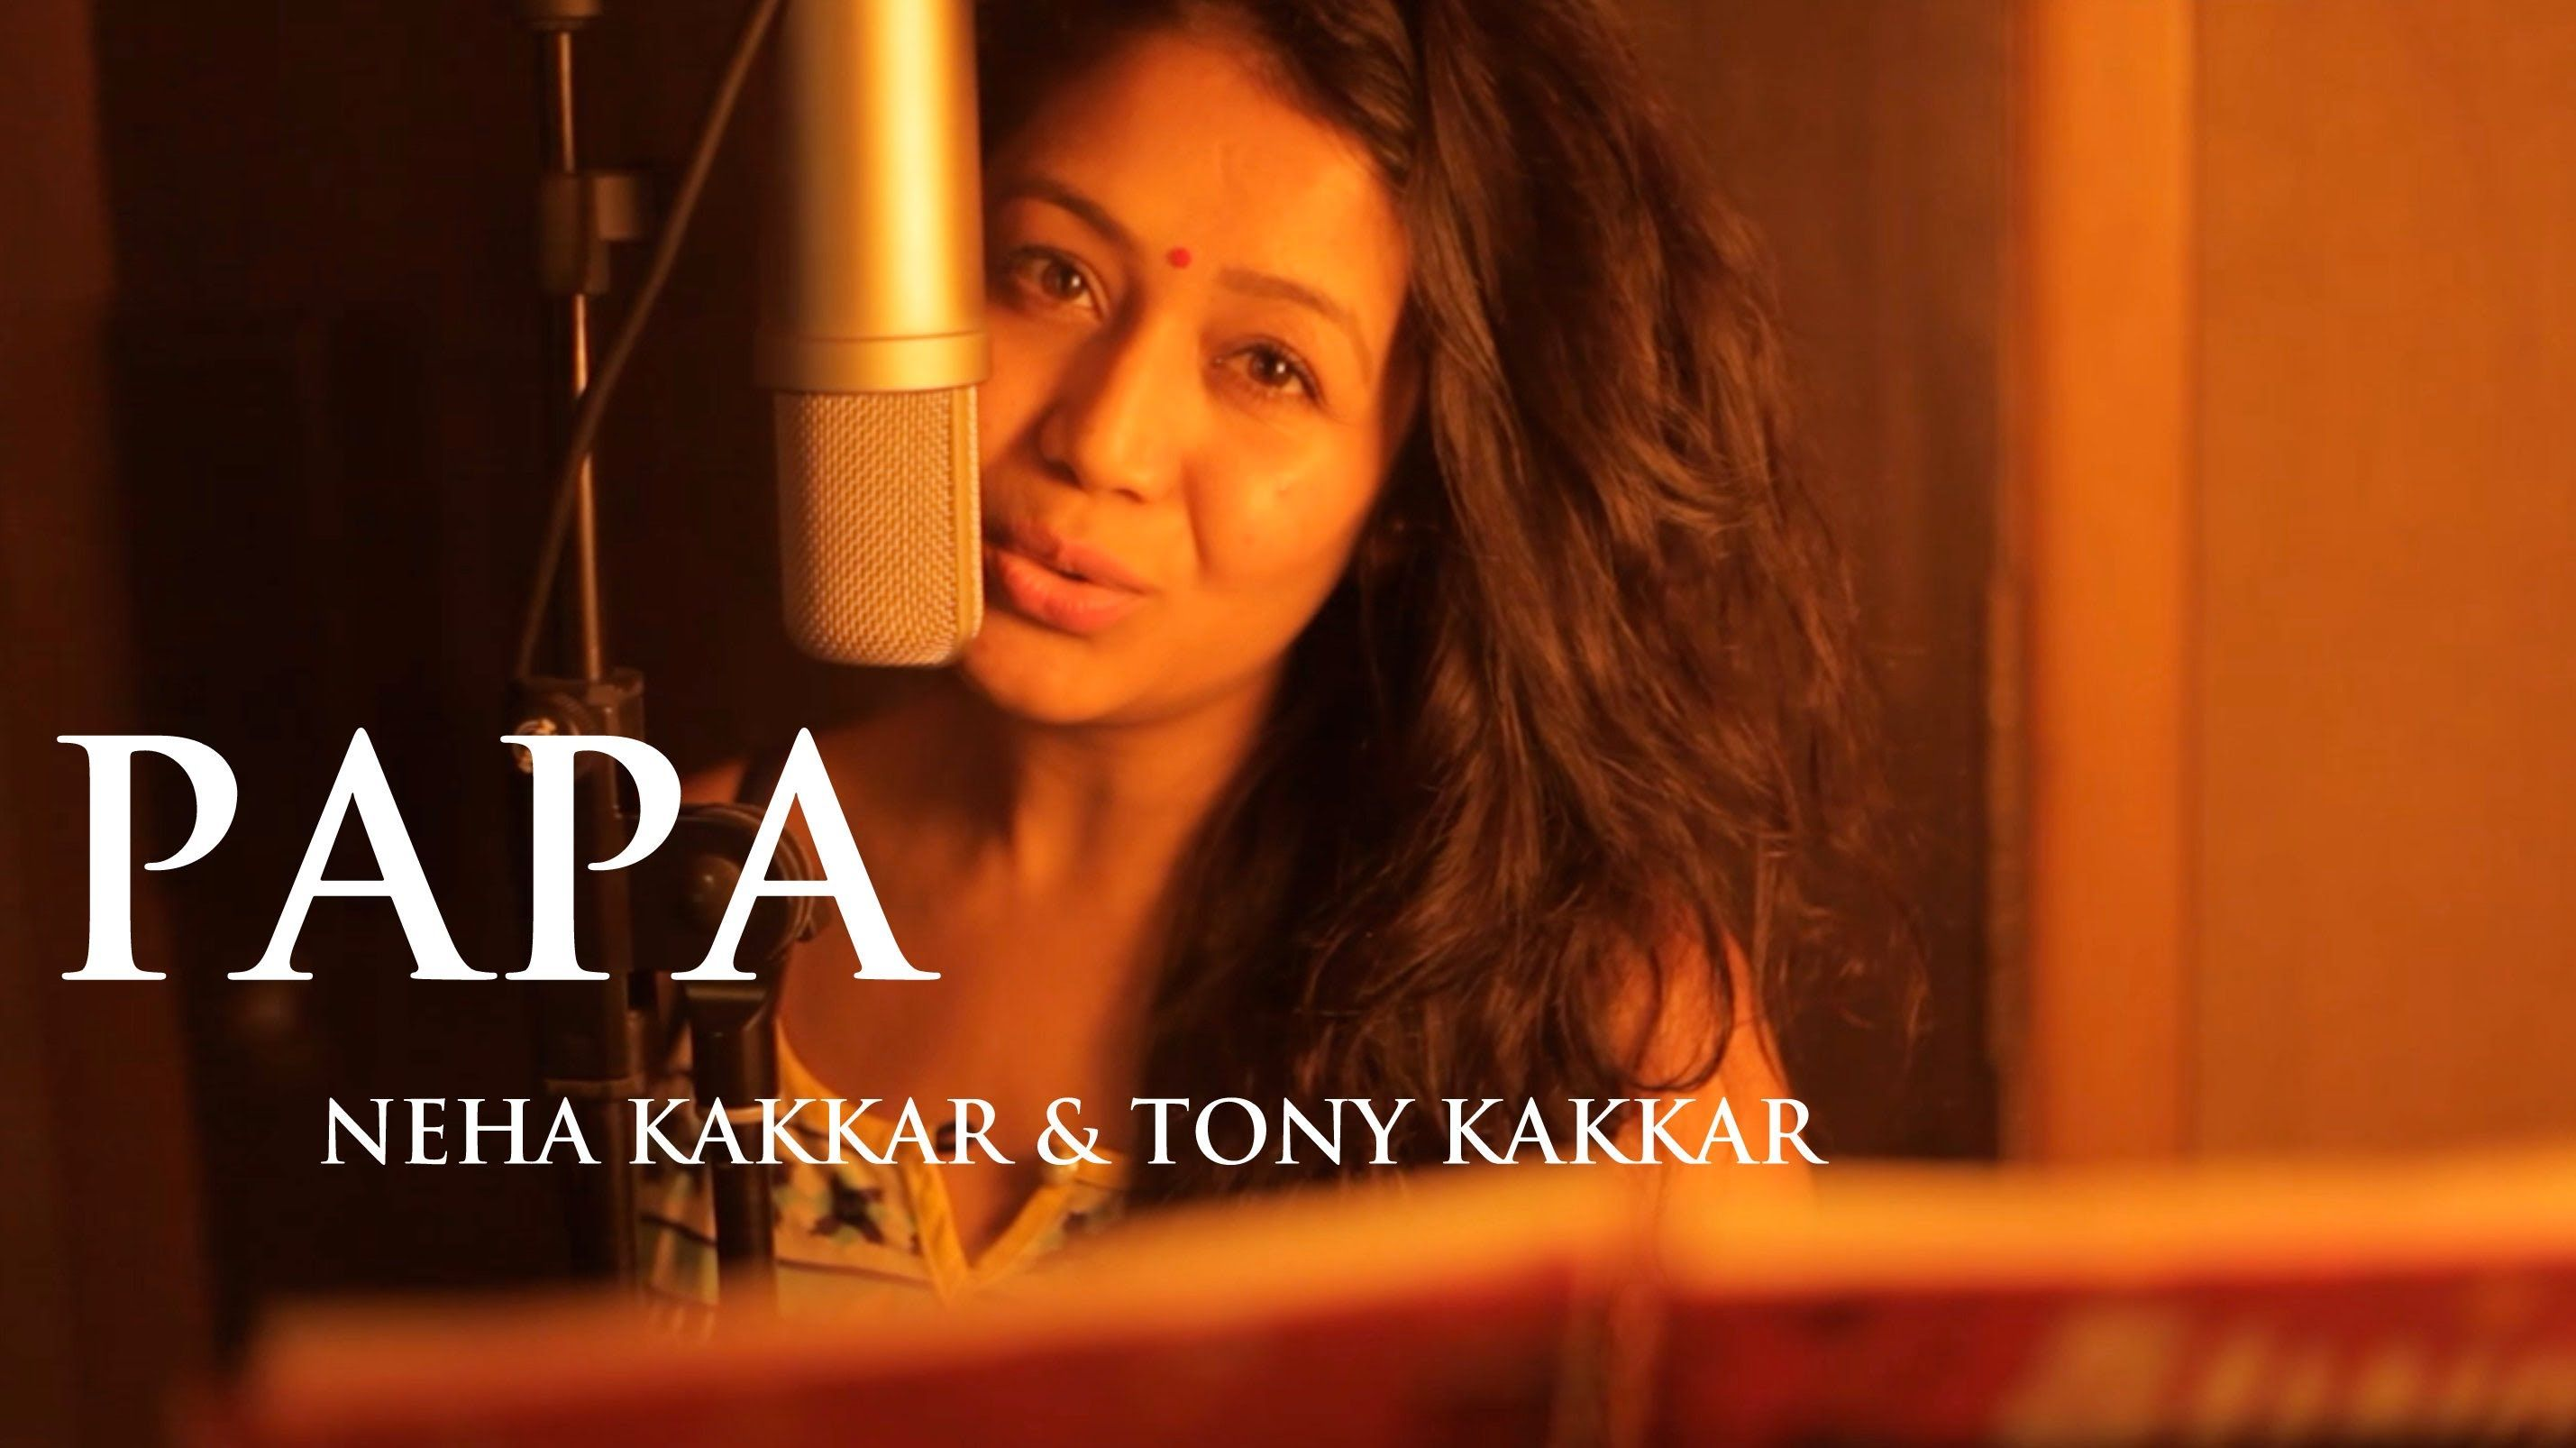 Papa Father S Day Special Song By Neha Kakkar Tony Kakkar Neha Kakkar Fathers Day Songs Father S Day Specials